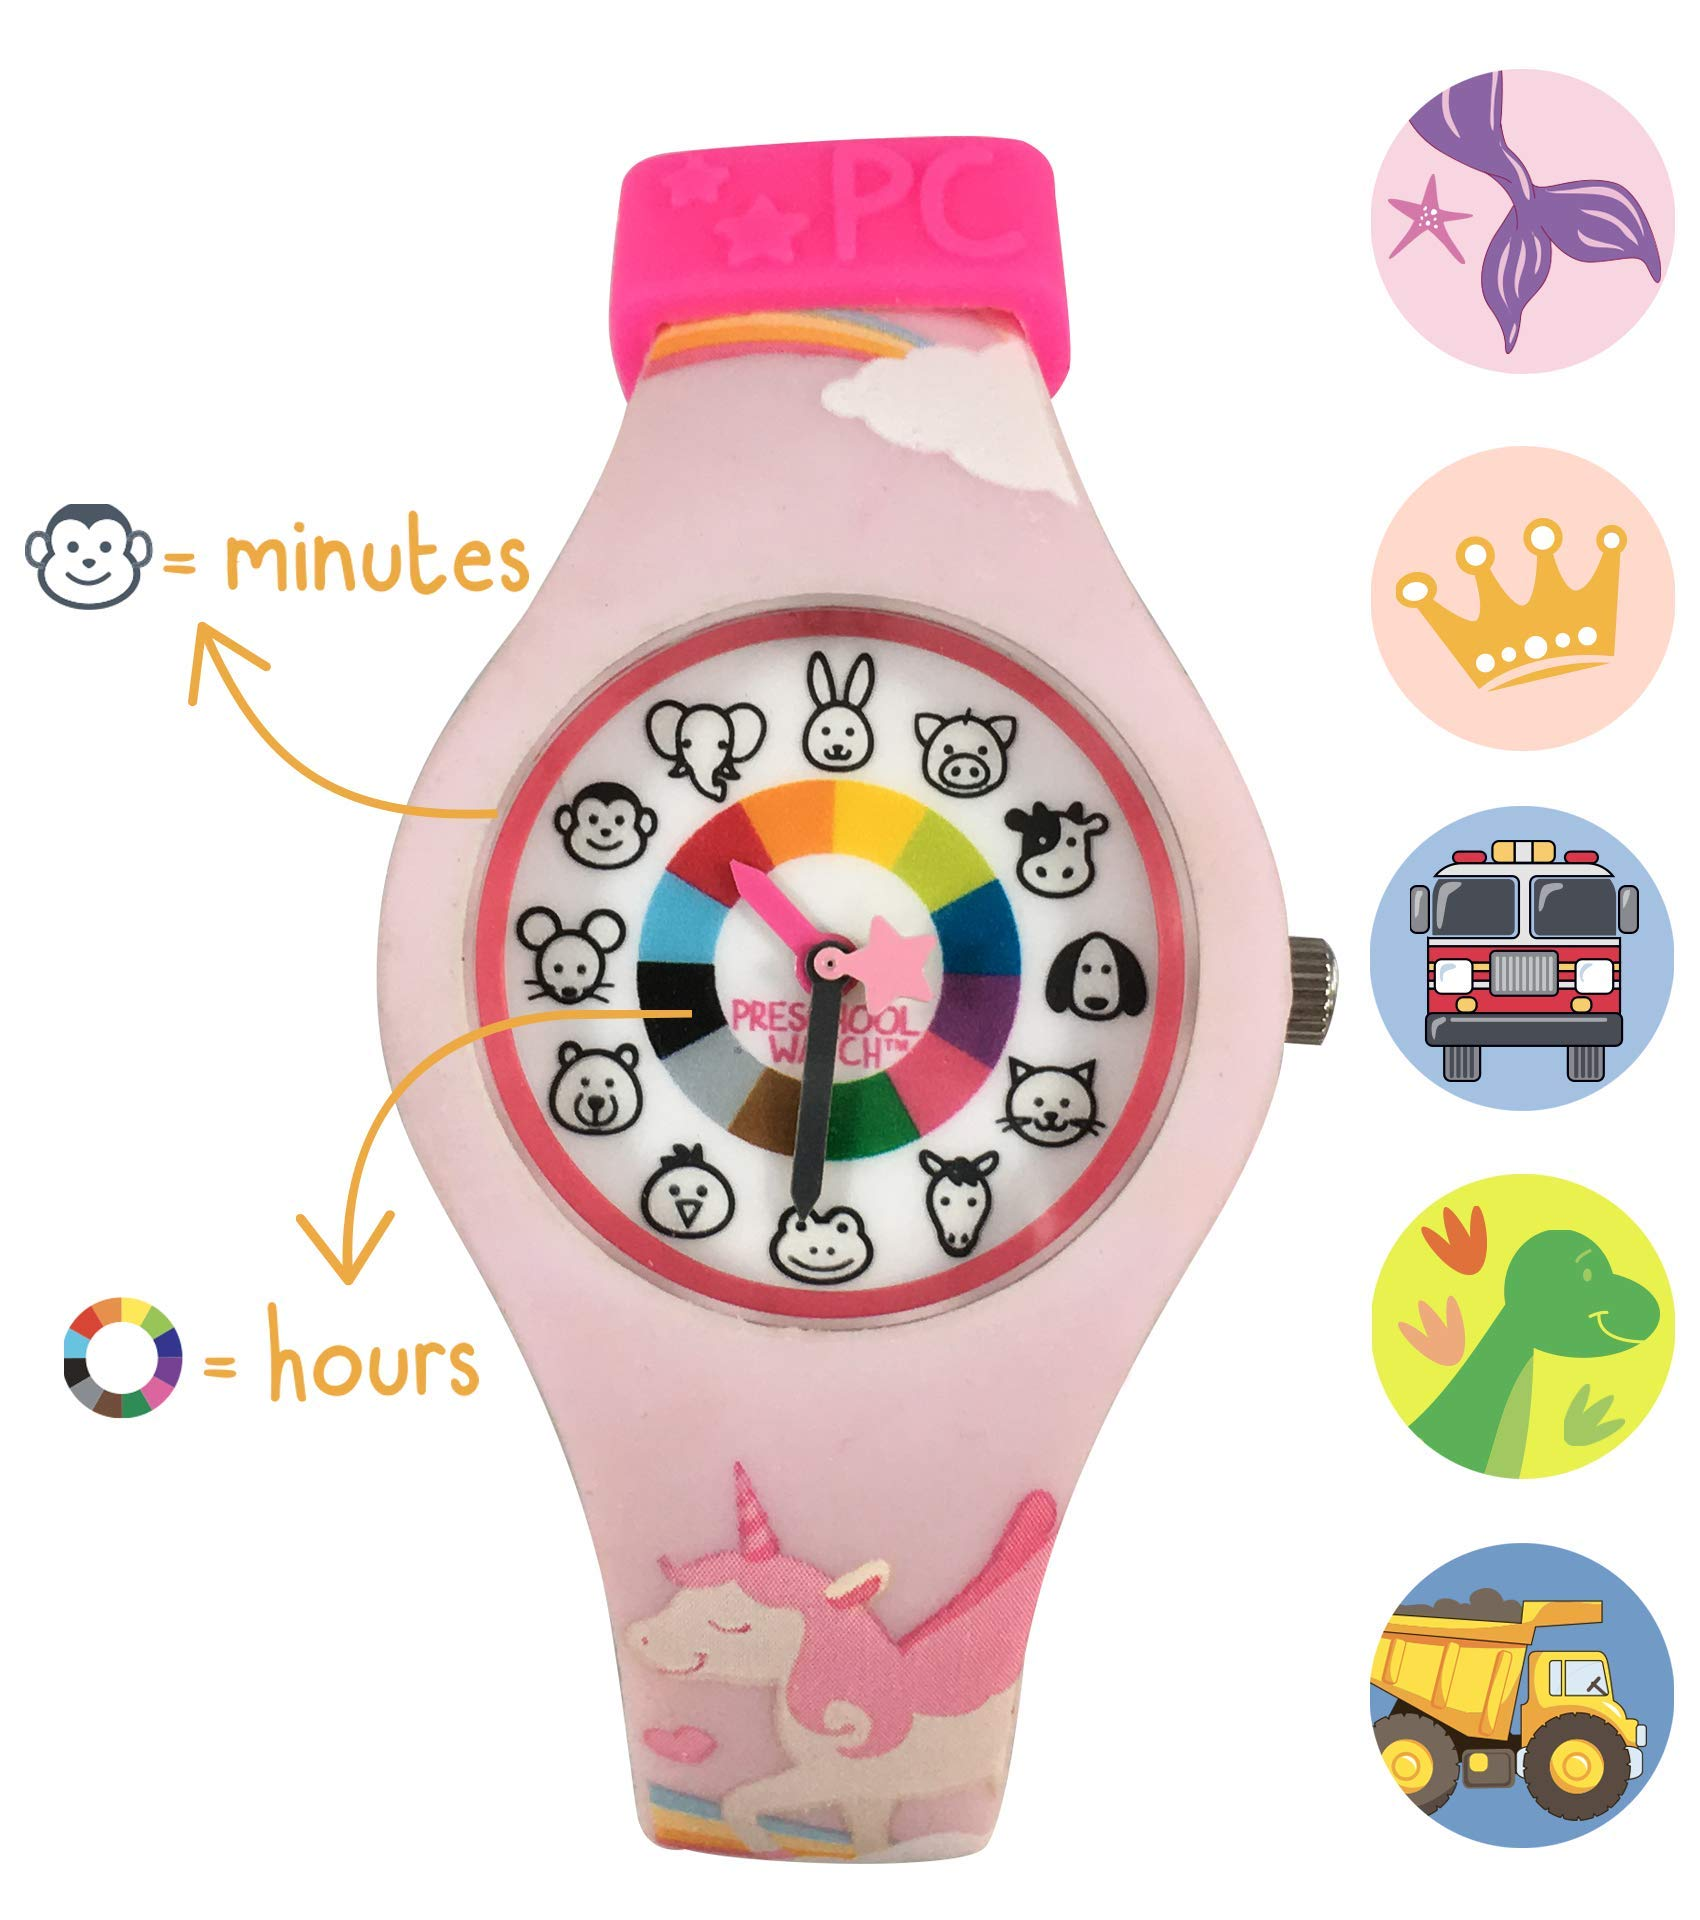 Unicorn Preschool Watch - The Only Kids Watch Preschoolers Understand! Quality Teaching time Silicone Watch with Glow-in-The-Dark Dial & Japan Movement